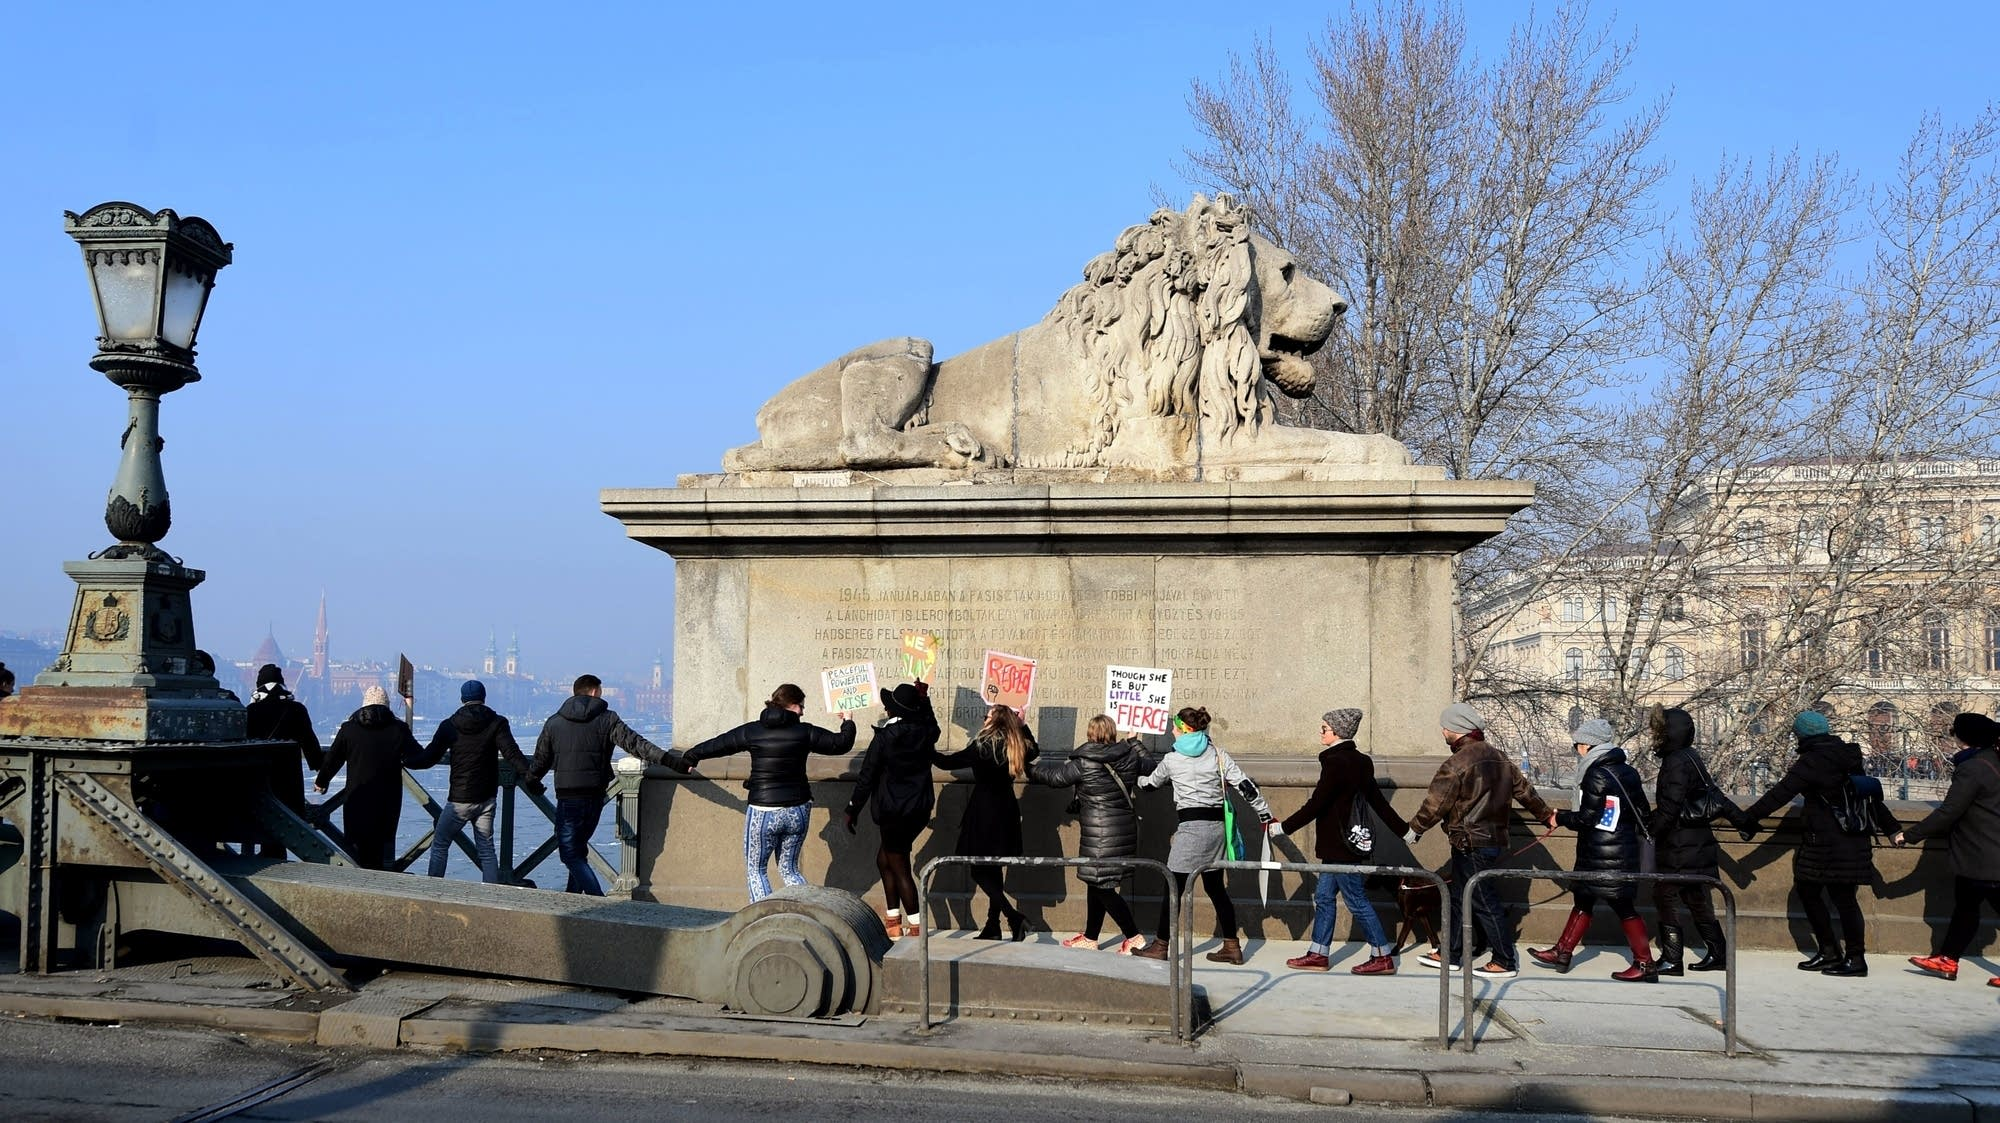 Budapest, Hungary: Participants create a human chain.